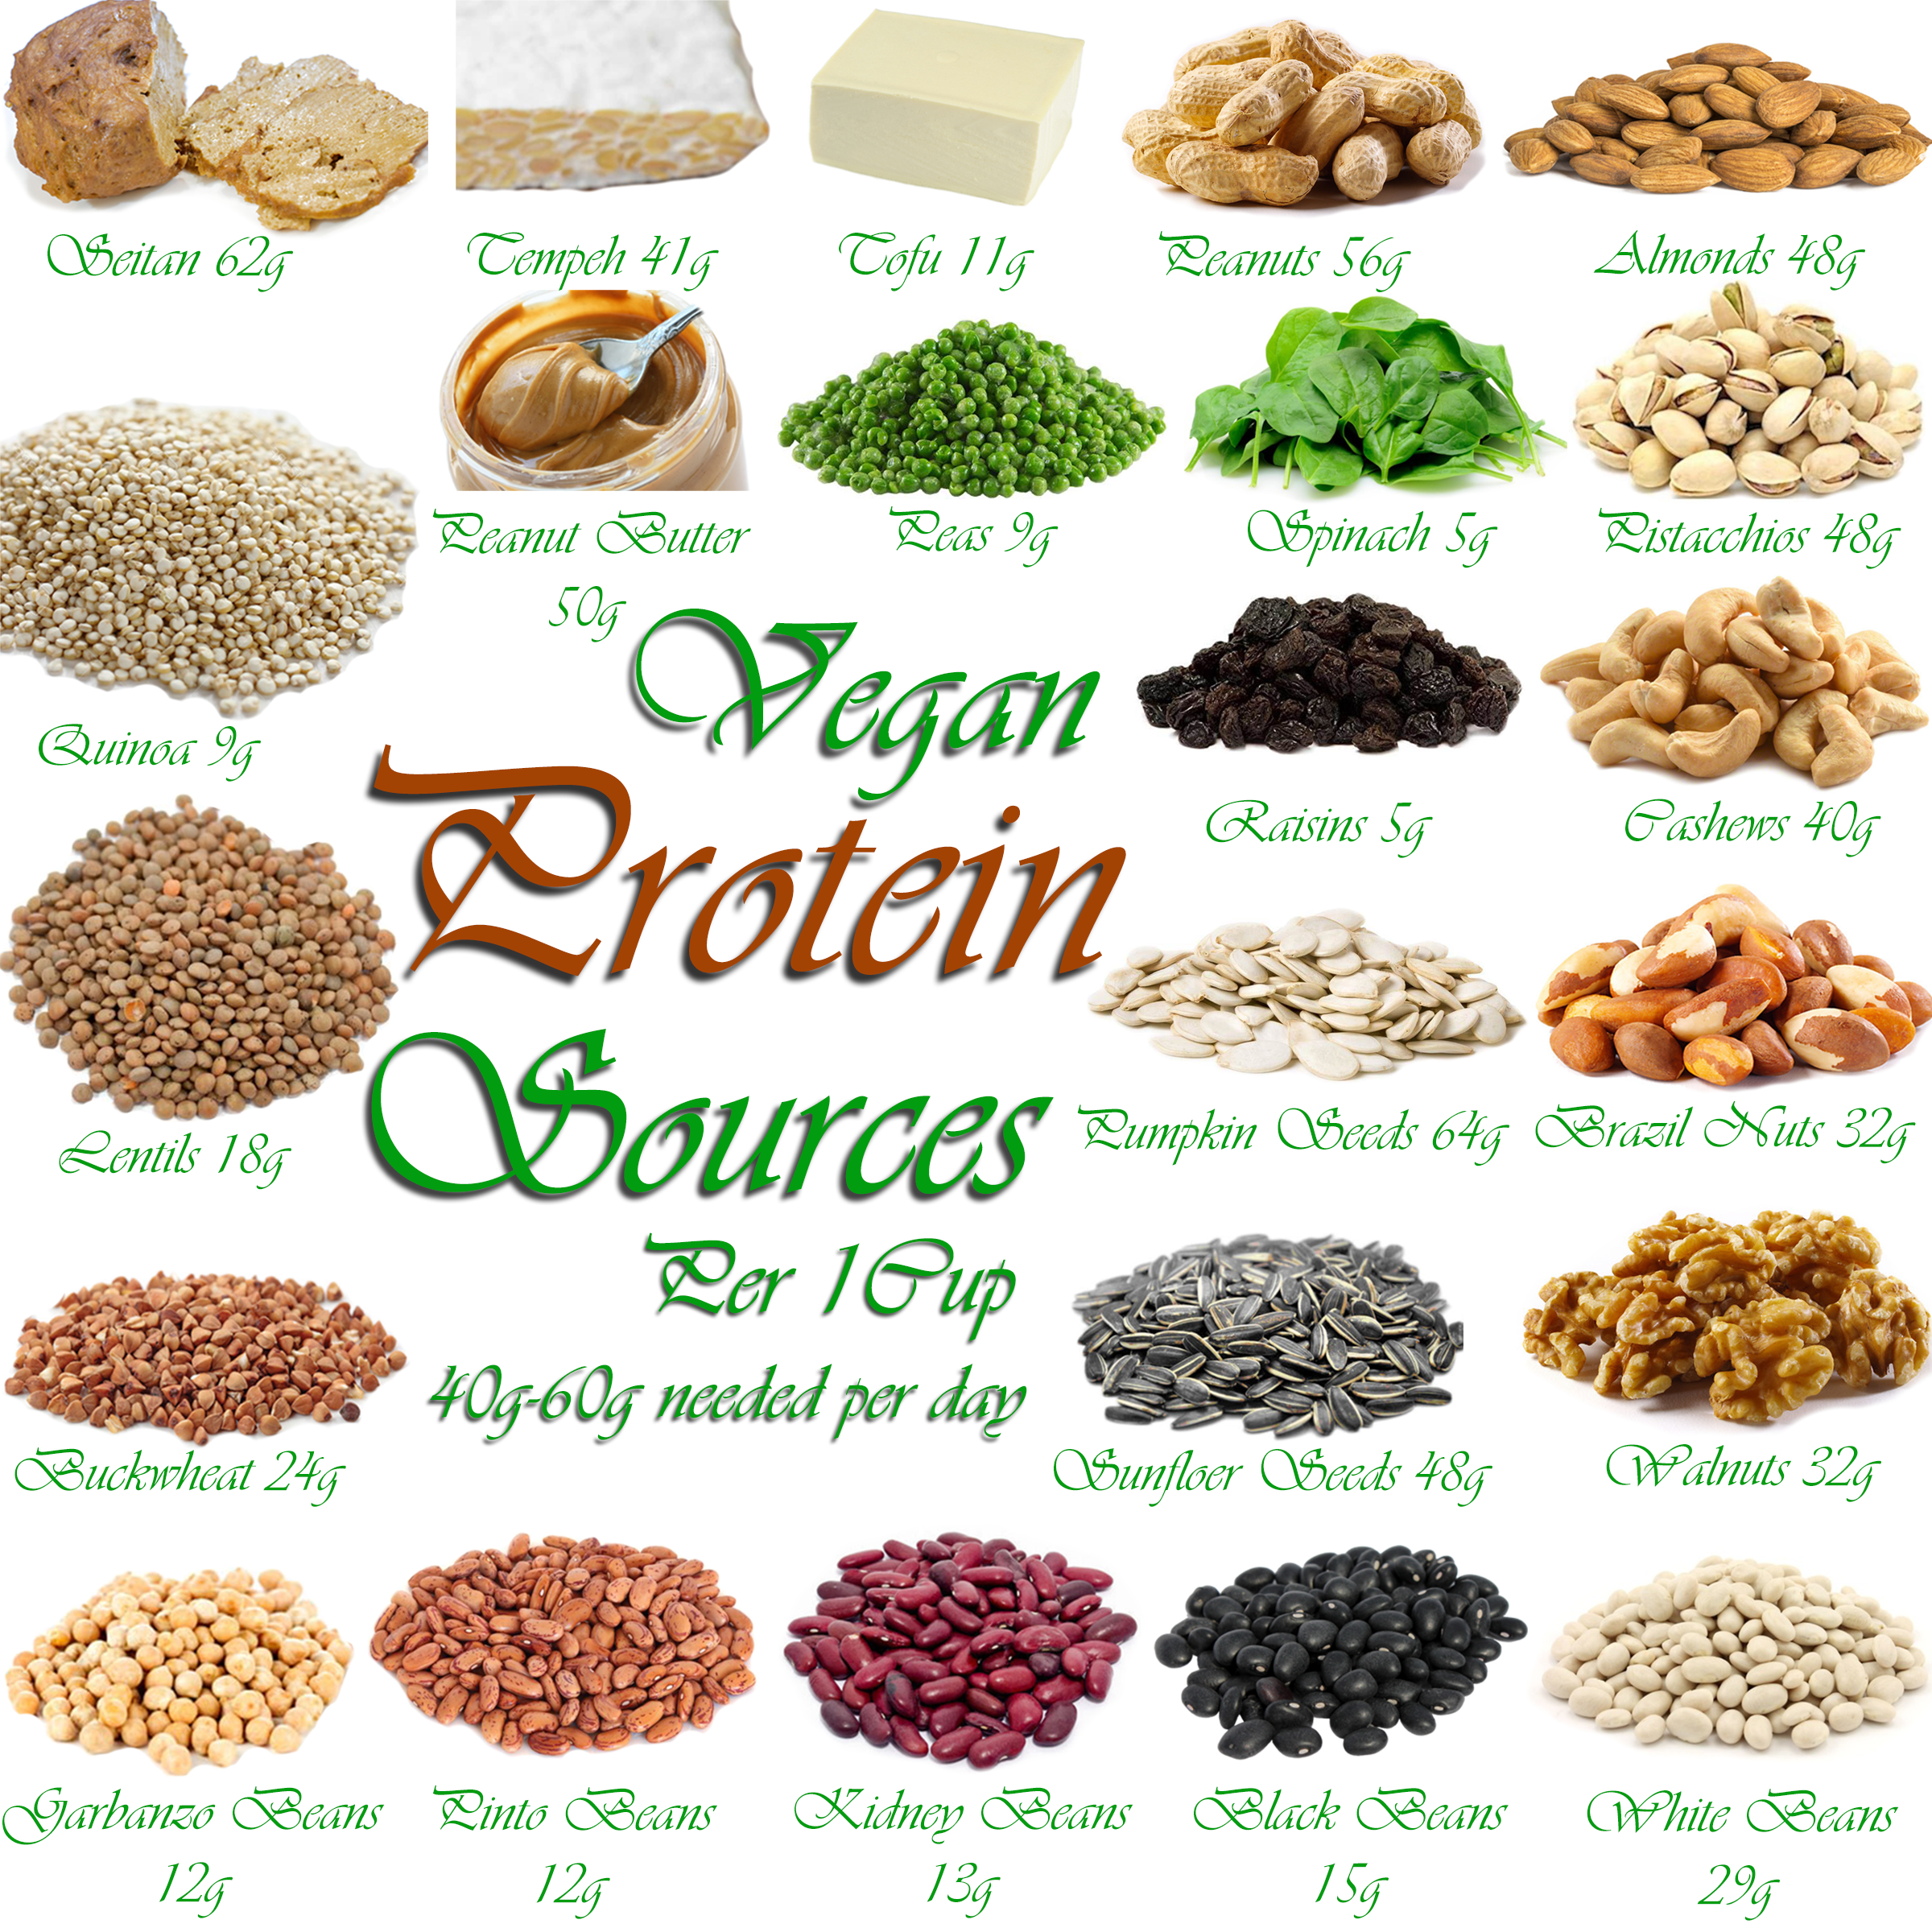 AterImber.com - The Veg Life - Vegan Tips - Where Do Vegans Get Their Protien Collage - vegan food, vegan nutrients, vegan facts